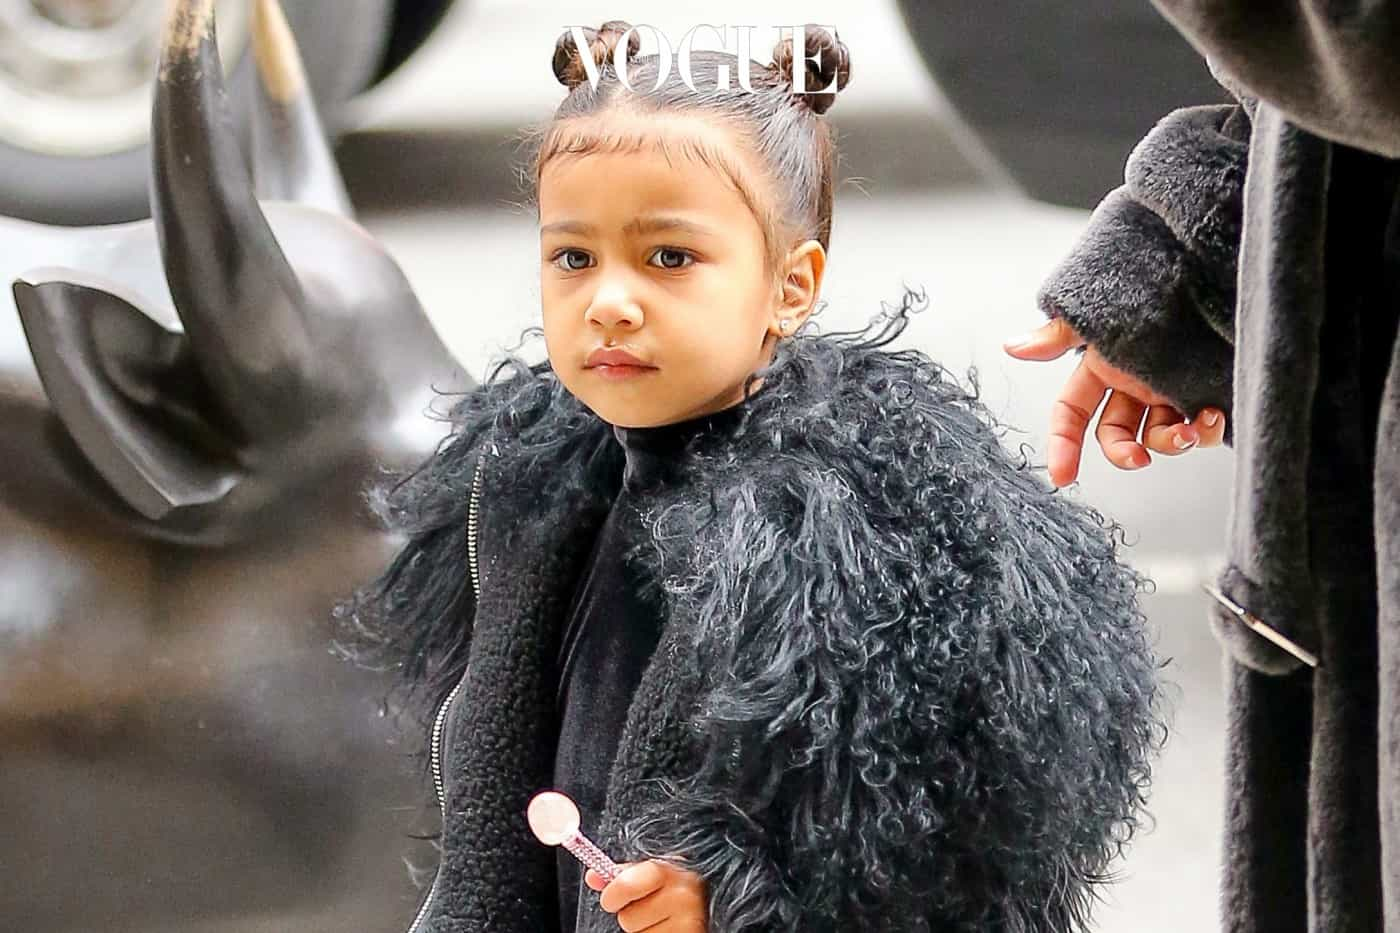 Kim Kardashian seen wearing her fake lip piercing while out and about with her kids North West and Saint West and her friend Jonathan Cheban in New York City, they where arriving at Cipriani in SoHo.  Pictured: North West Ref: SPL1433278  010217   Picture by: Felipe Ramales / Splash News  Splash News and Pictures Los Angeles:310-821-2666 New York:212-619-2666 London:870-934-2666 photodesk@splashnews.com